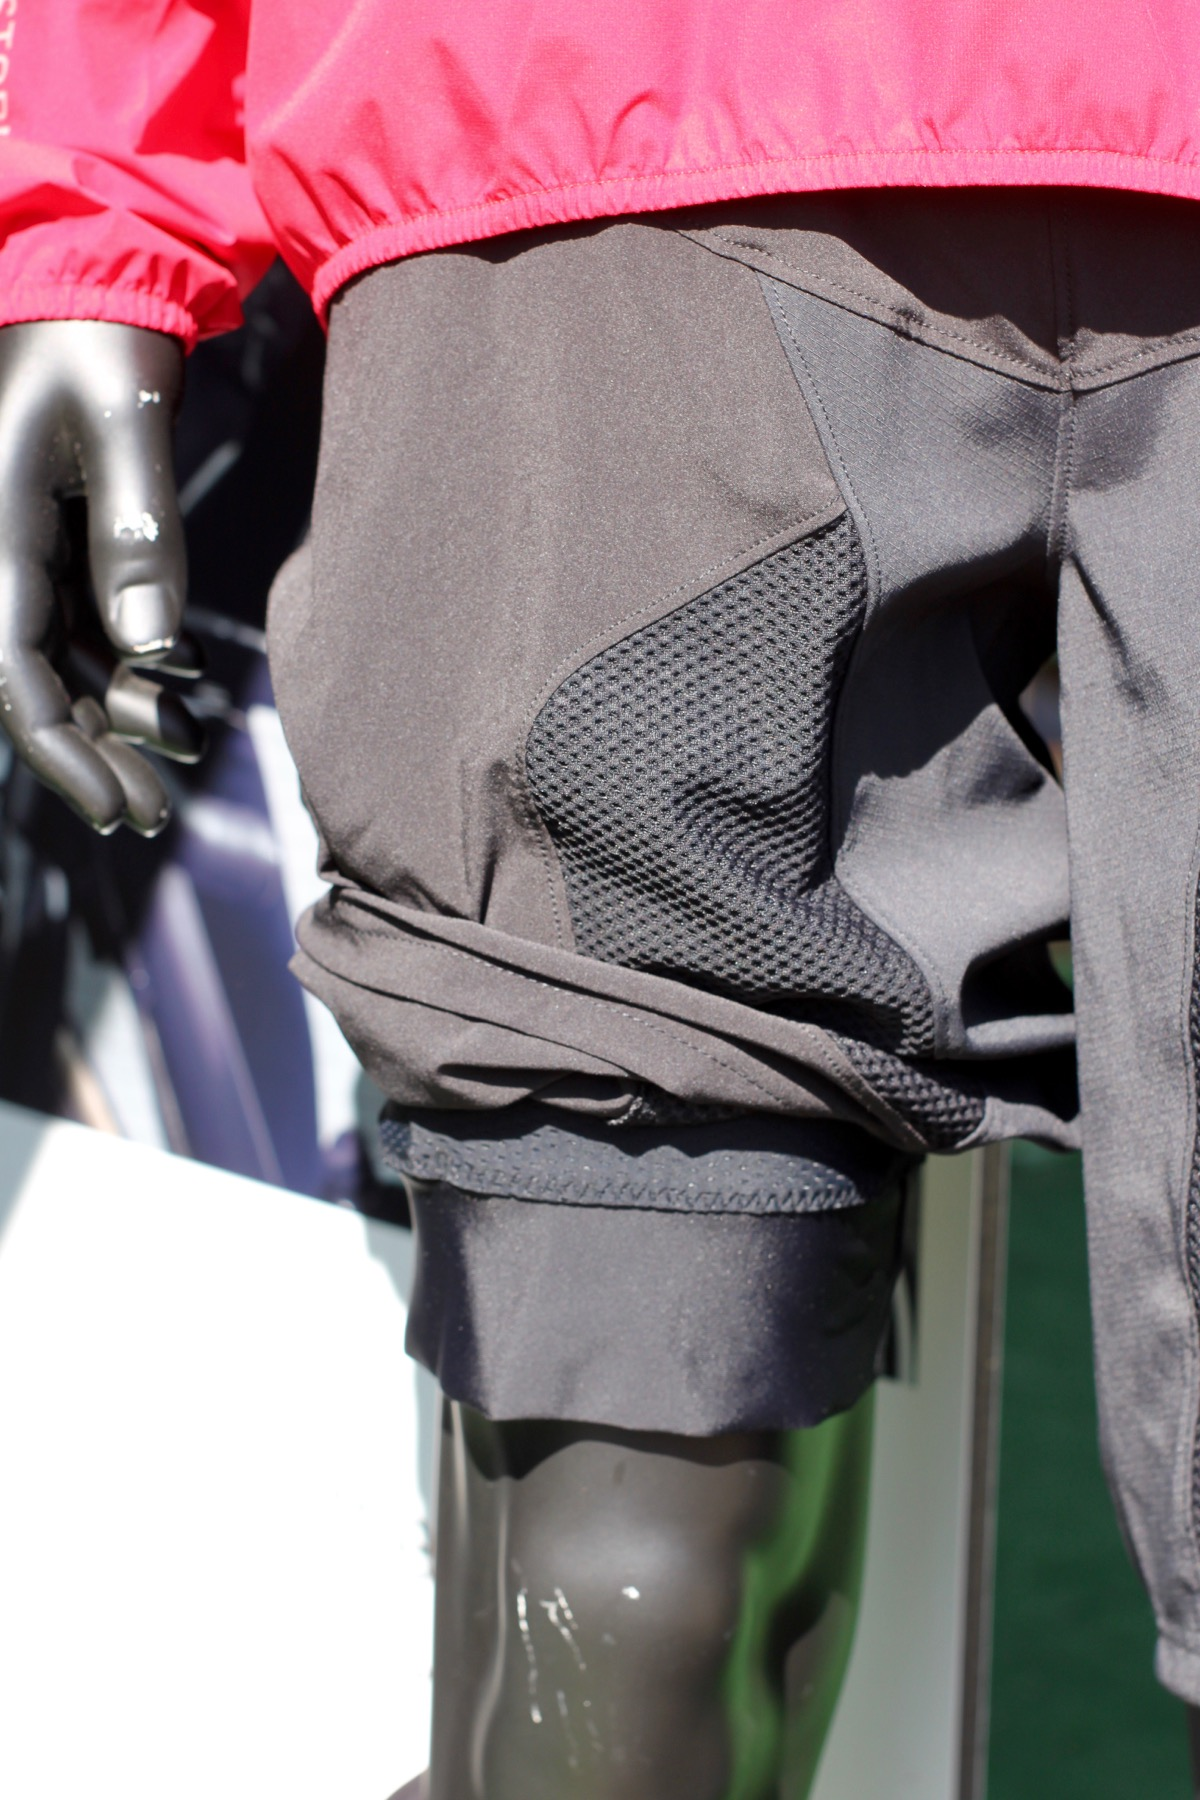 Showing the inner short cuff below the outer baggy short.